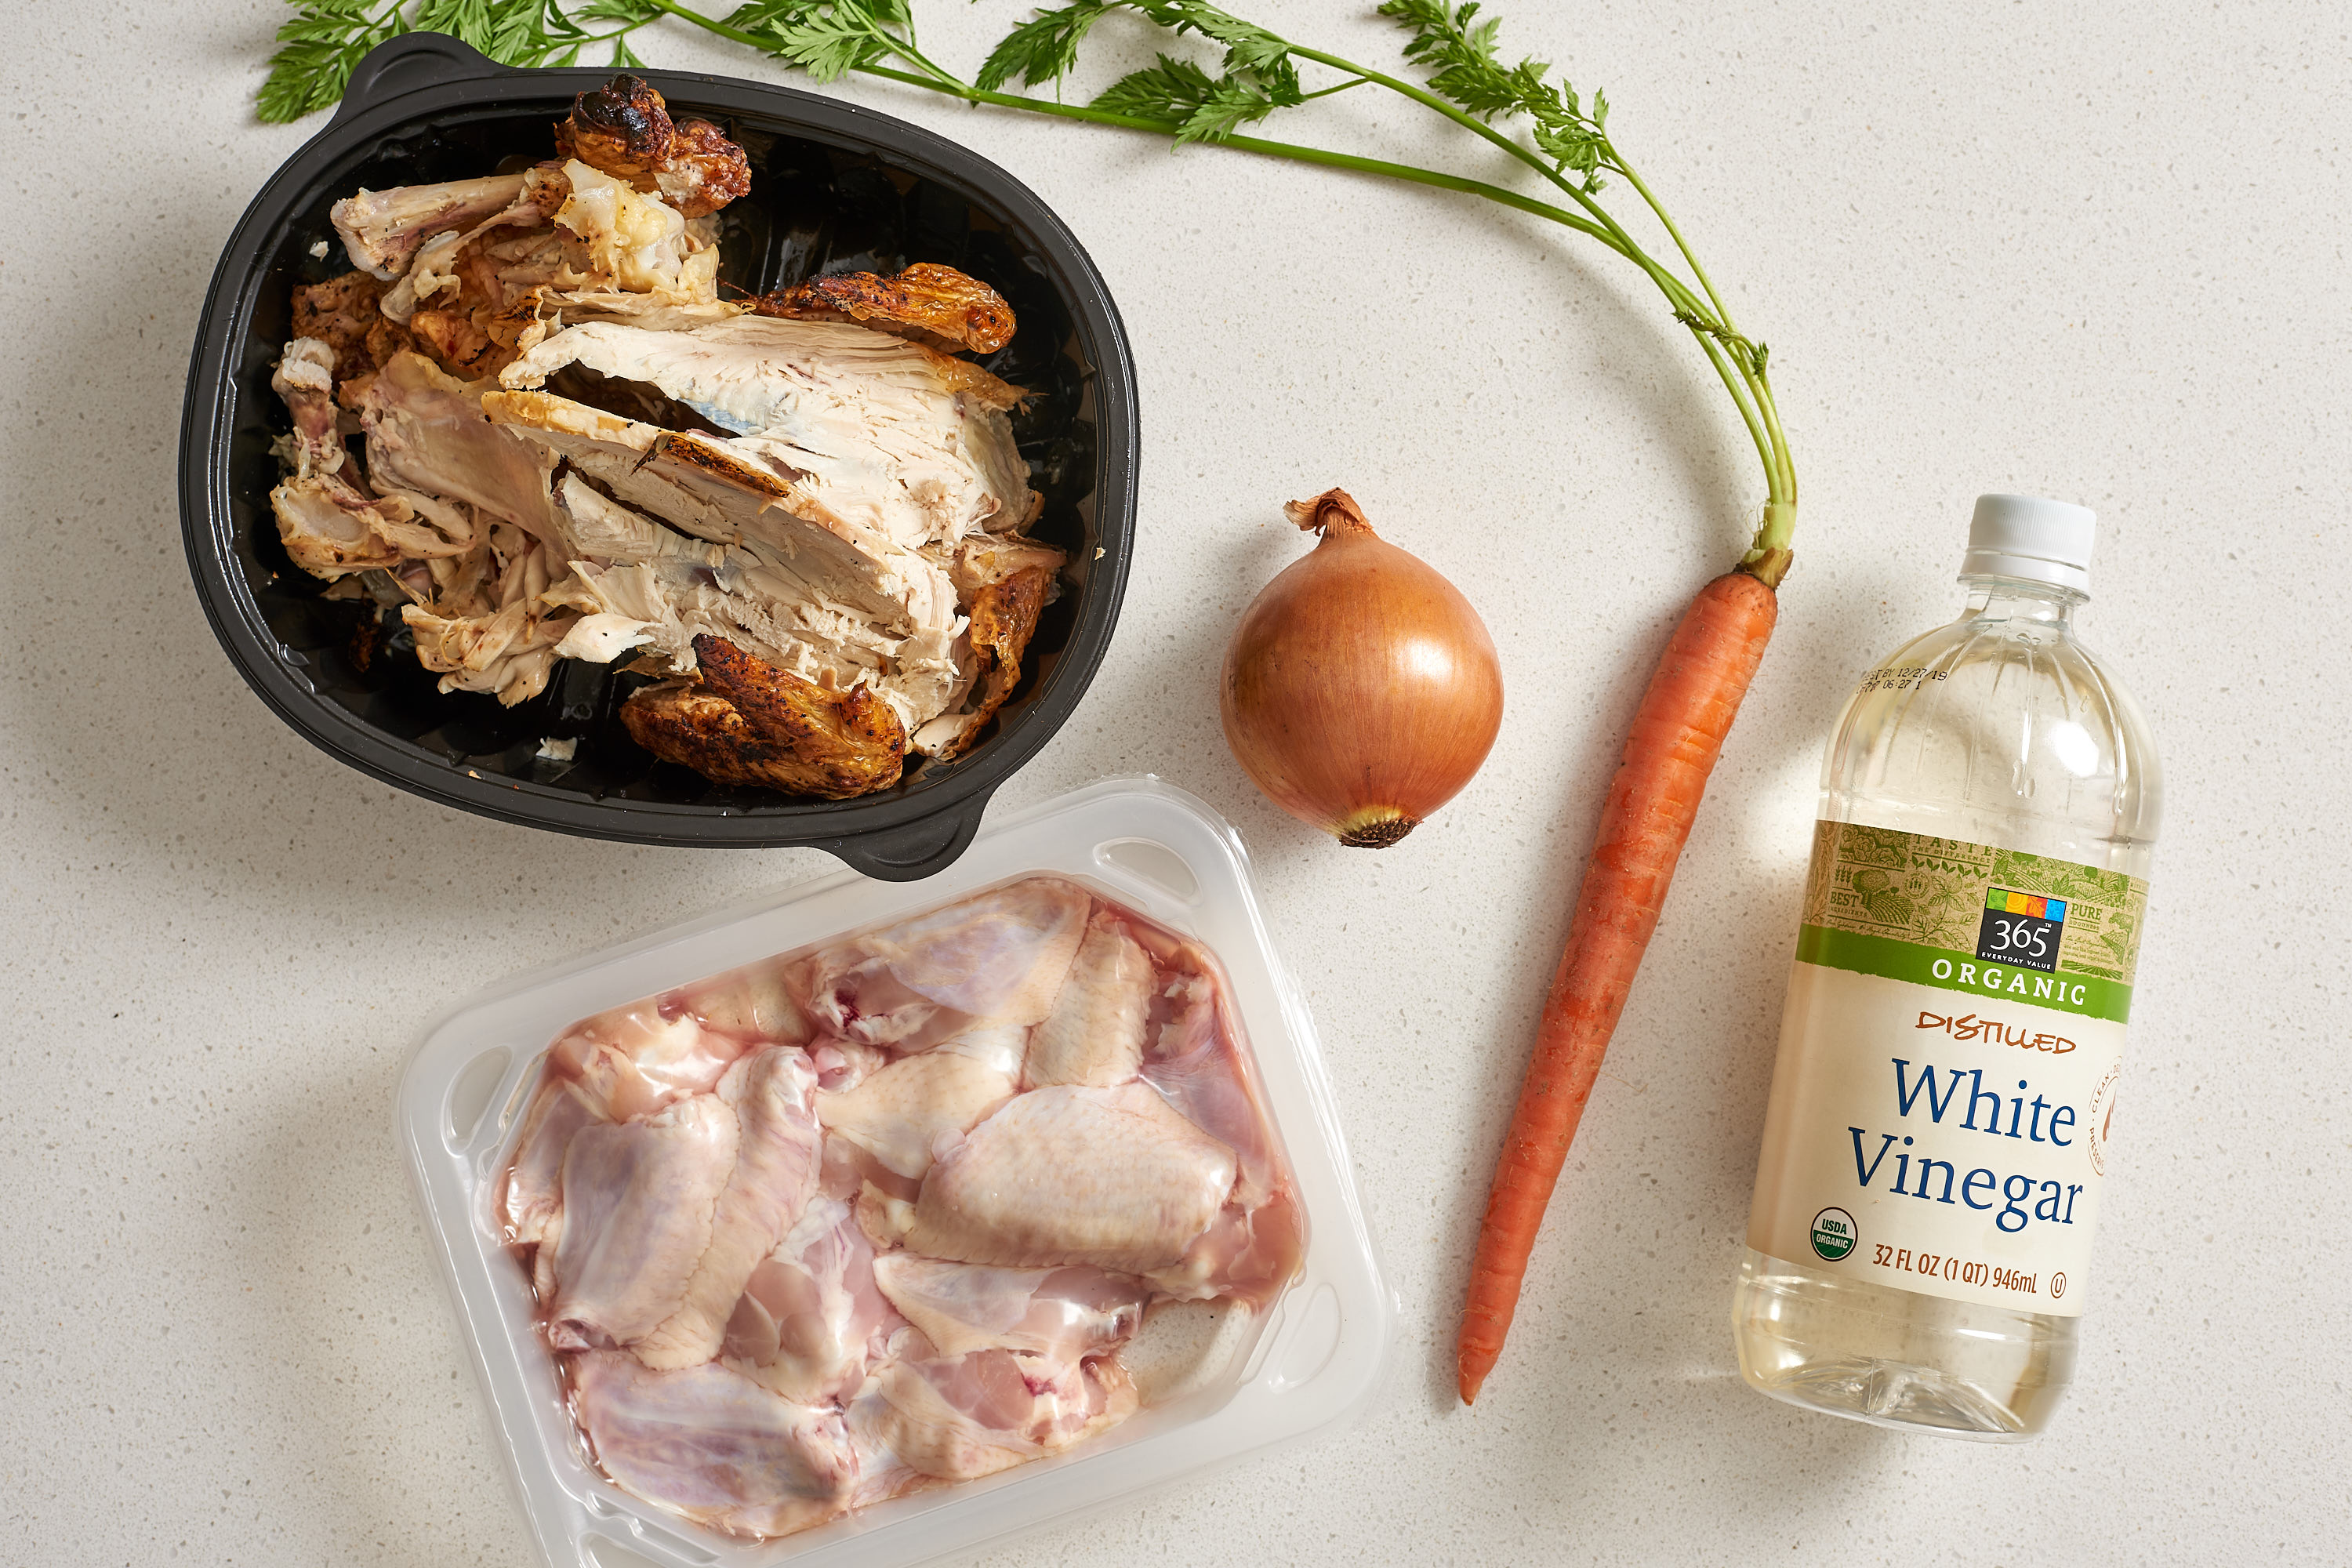 How To Make Chicken Bone Broth - Stovetop and Slow Cooker